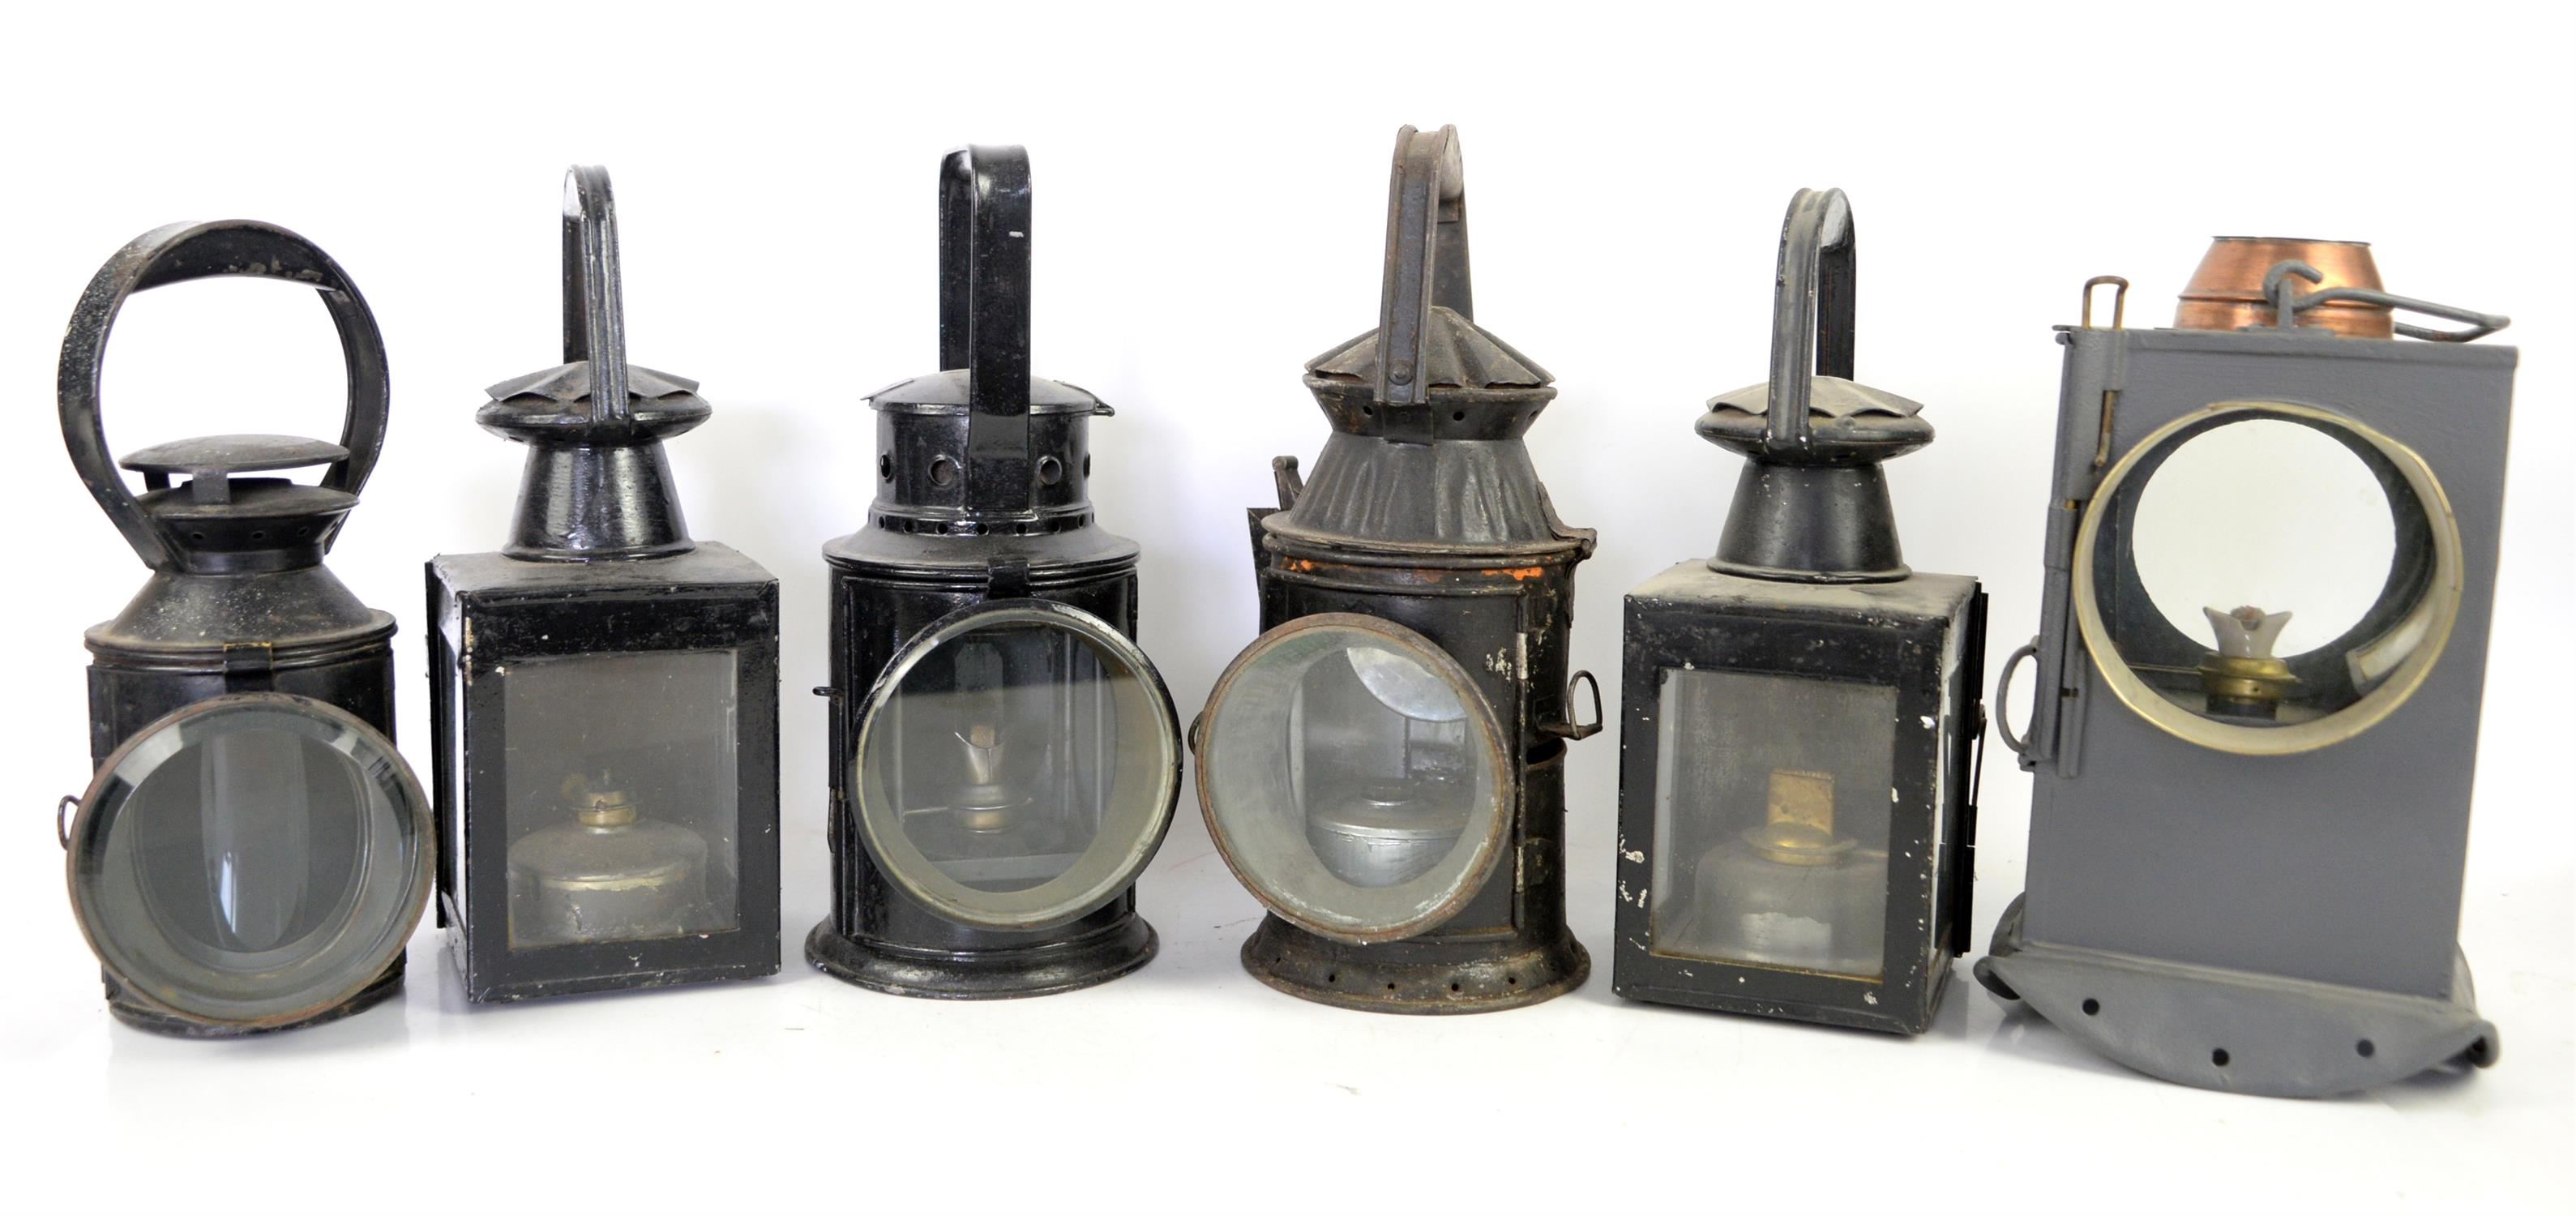 Railway Hand lamp by R T Bladon & Son, another stamped L T, WD hand lamp 1954, three colour hand